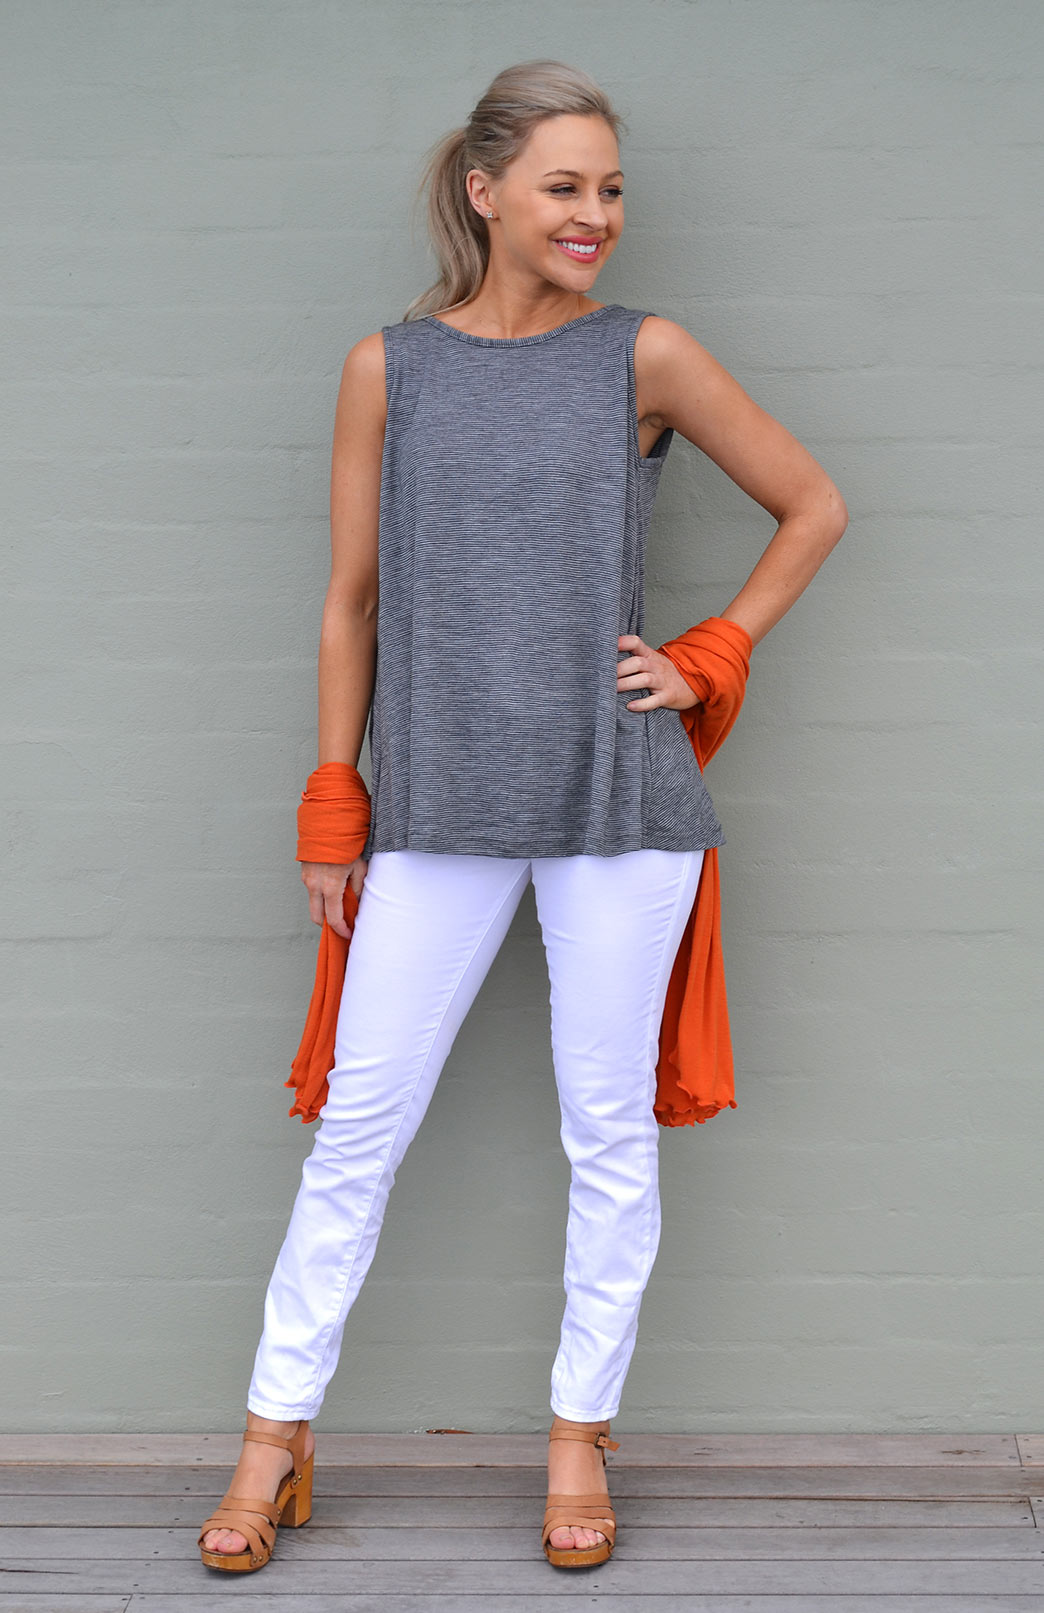 Flutter Top - Sleeveless - Women's Sleeveless Spring Summer Wool Top - Smitten Merino Tasmania Australia